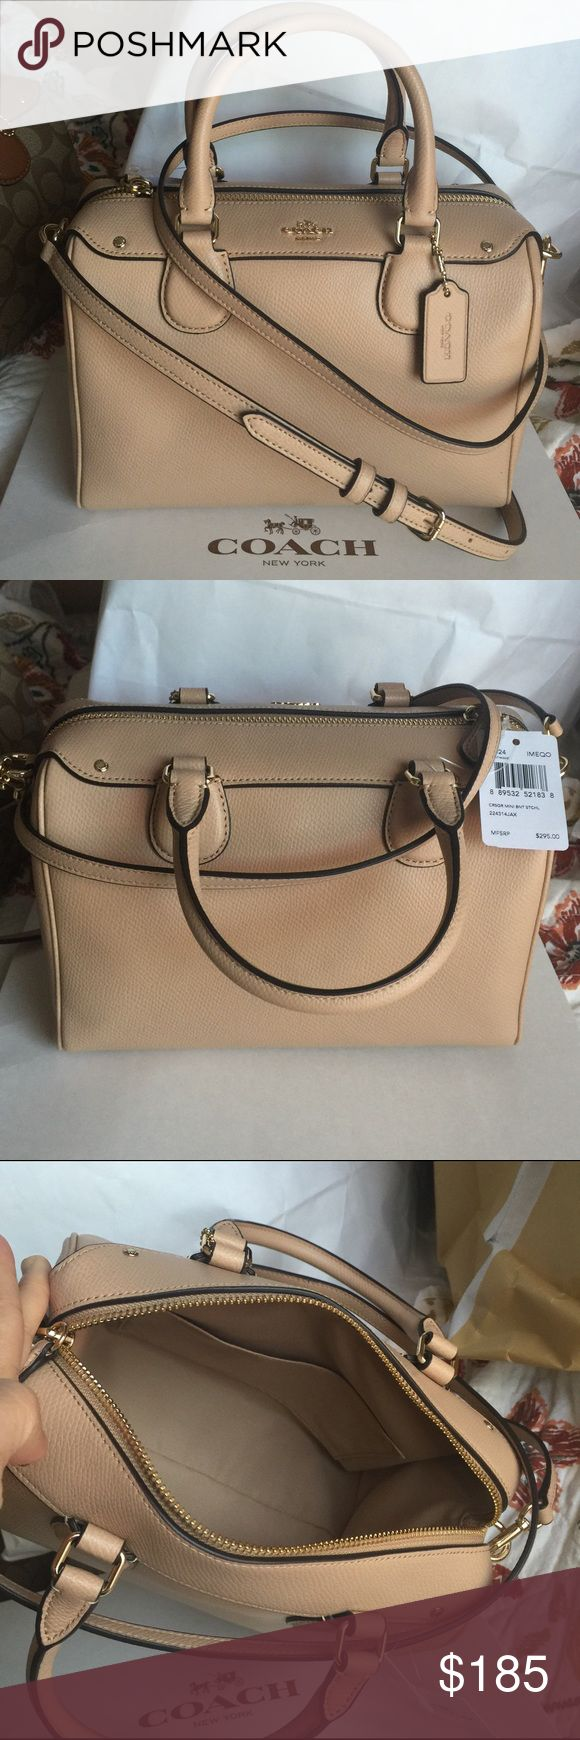 Coach Purse 100% Authentic Coach Purse, brand new with tag! Coach Bags Crossbody Bags